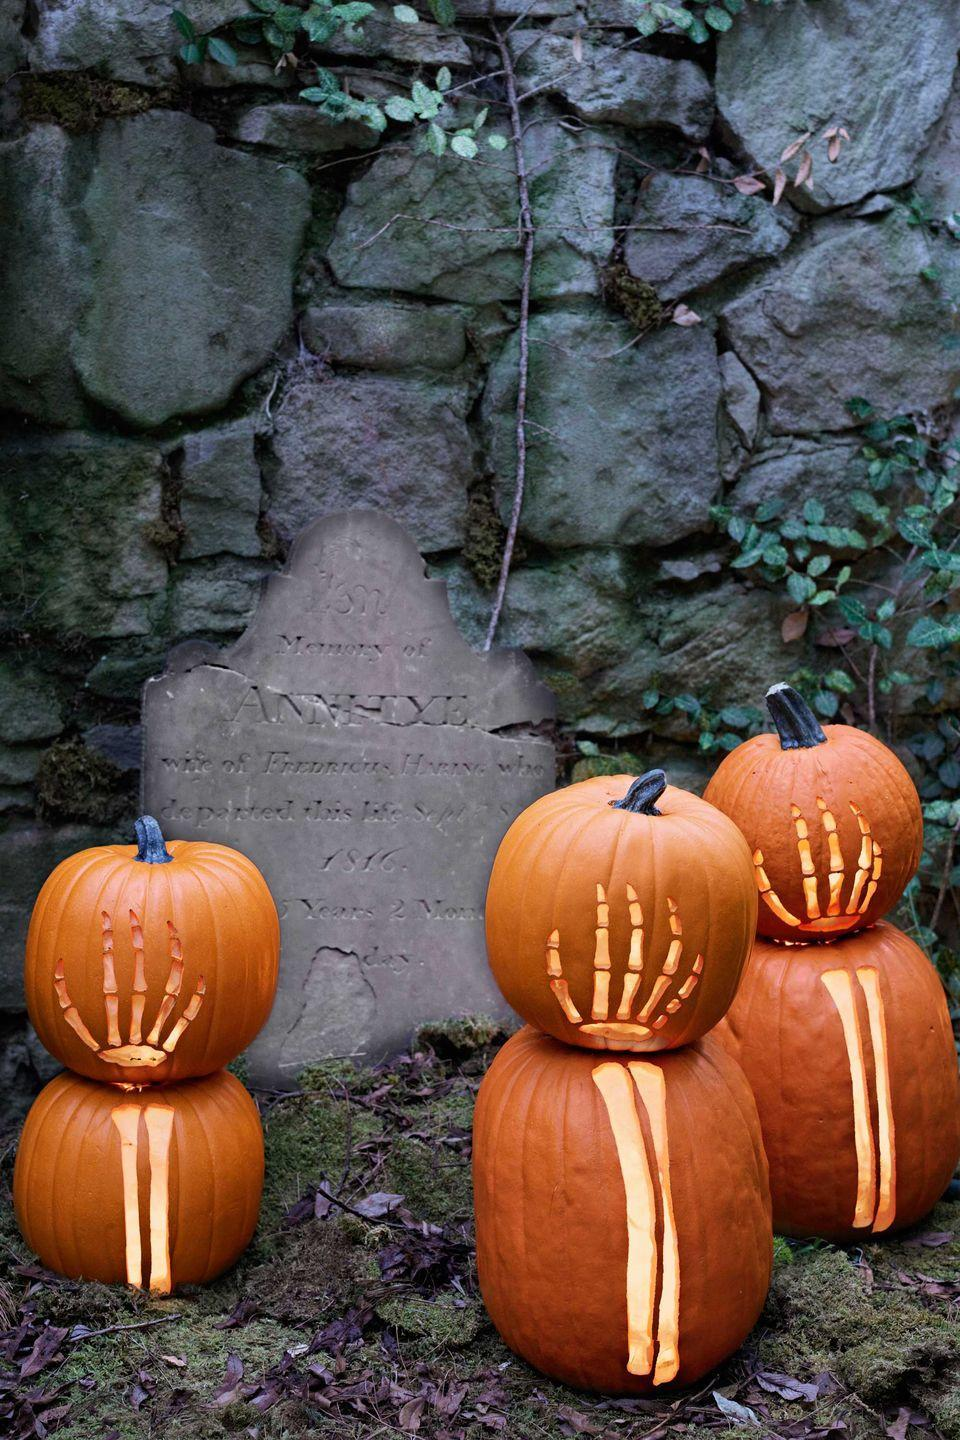 "<p>These carved pumpkins look as if they're reaching from beyond the grave in your front yard.</p><p><strong>Step 1:</strong> Select a pair of pumpkins to form each arm-hand combo. Determine which gourd will serve as the arm (usually the taller one) and trim its stem so the other pumpkin can rest securely on top. Carve a hole in the bottoms of both, scoop out the pulp, and return the cut pieces.</p><p><strong>Step 2:</strong> Print out our <a href=""https://www.countryliving.com/diy-crafts/how-to/a3048/halloween-templates-1009/"" rel=""nofollow noopener"" target=""_blank"" data-ylk=""slk:skeletal templates"" class=""link rapid-noclick-resp"">skeletal templates</a> and resize on a copier, scaling the images to fit your pumpkins.</p><p><strong>Step 3:</strong> Cut out stencils as directed on the templates and affix the arm stencil to the bottom pumpkin with masking tape. Trace on the design with a felt-tip pen. Repeat the process on the other pumpkin, using the hand template. </p><p><strong>Step 4:</strong> Remove stencils, then carefully carve along the drawn lines with an X-Acto knife. Affix a battery-operated votive candle in the base of each pumpkin with adhesive.</p><p><a class=""link rapid-noclick-resp"" href=""https://go.redirectingat.com?id=74968X1596630&url=https%3A%2F%2Fwww.bedbathandbeyond.com%2Fstore%2Fproduct%2Feverlasting-trade-battery-operated-votive-candles-set-of-10%2F1014703870&sref=https%3A%2F%2Fwww.countryliving.com%2Fdiy-crafts%2Fg1370%2Foutdoor-halloween-decorations%2F"" rel=""nofollow noopener"" target=""_blank"" data-ylk=""slk:SHOP VOTIVES"">SHOP VOTIVES</a><br></p>"